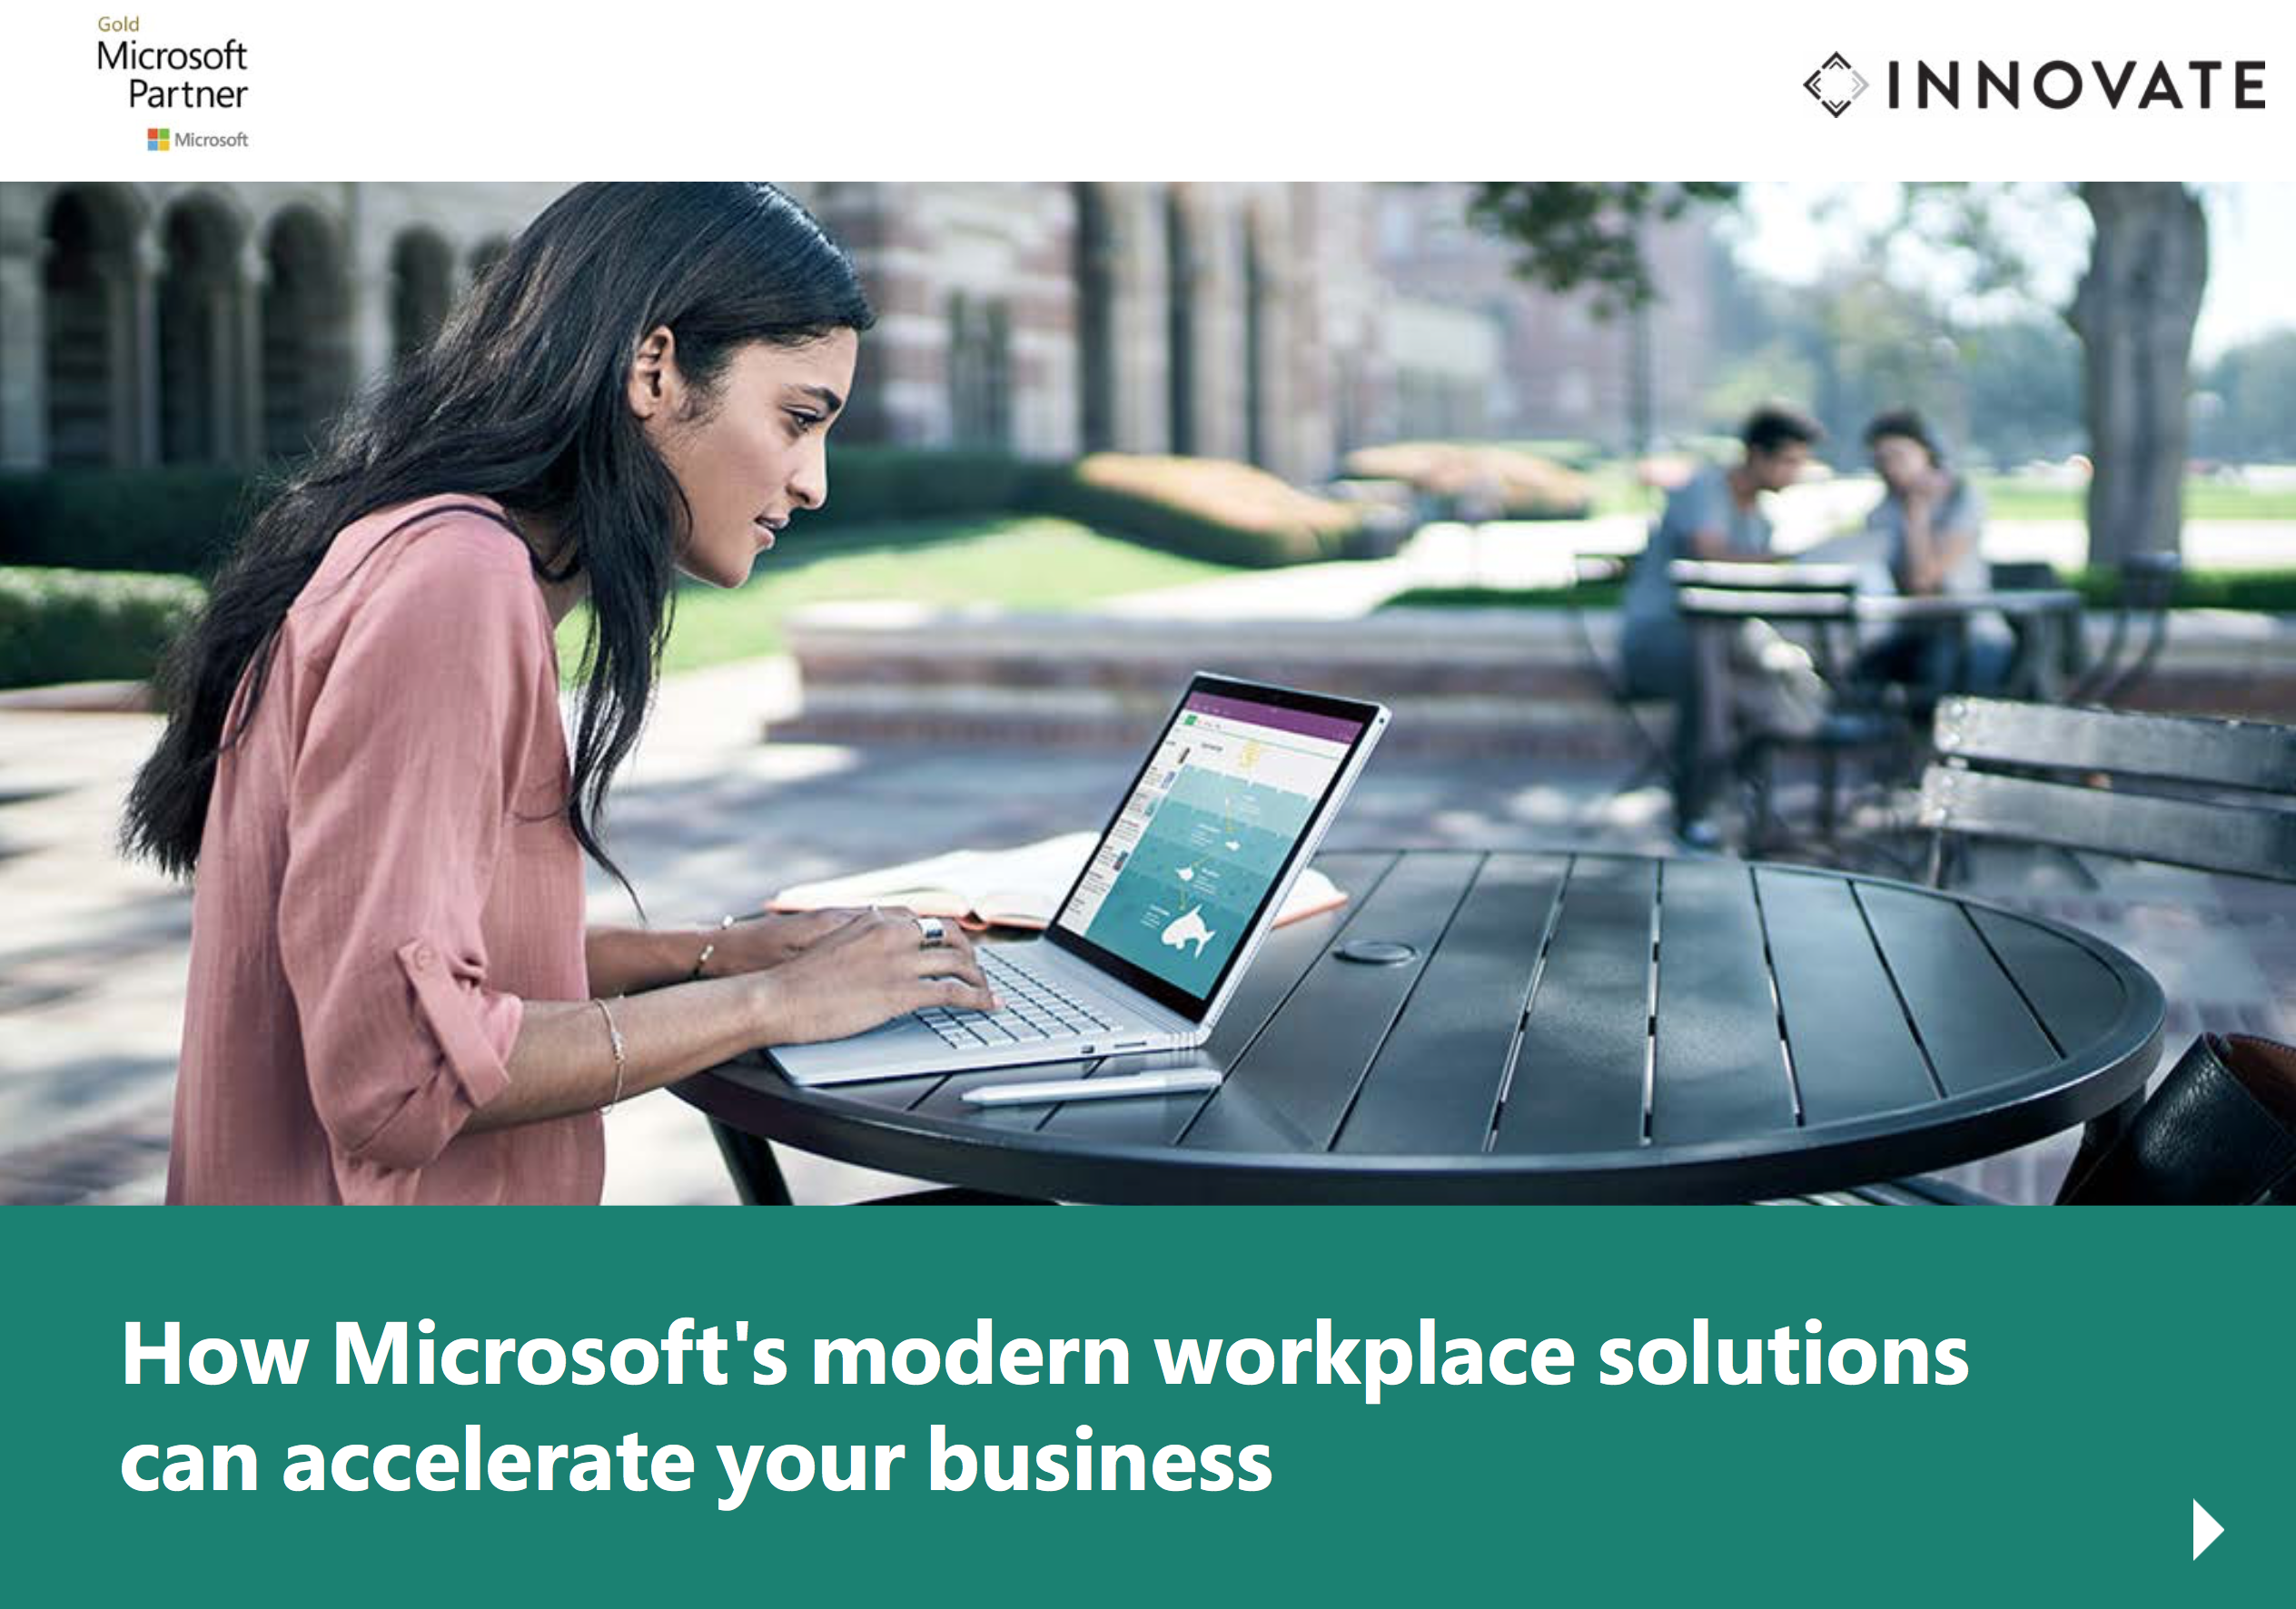 How Microsoft's Modern Workplace Solutions Can Accelerate Your Business - Image